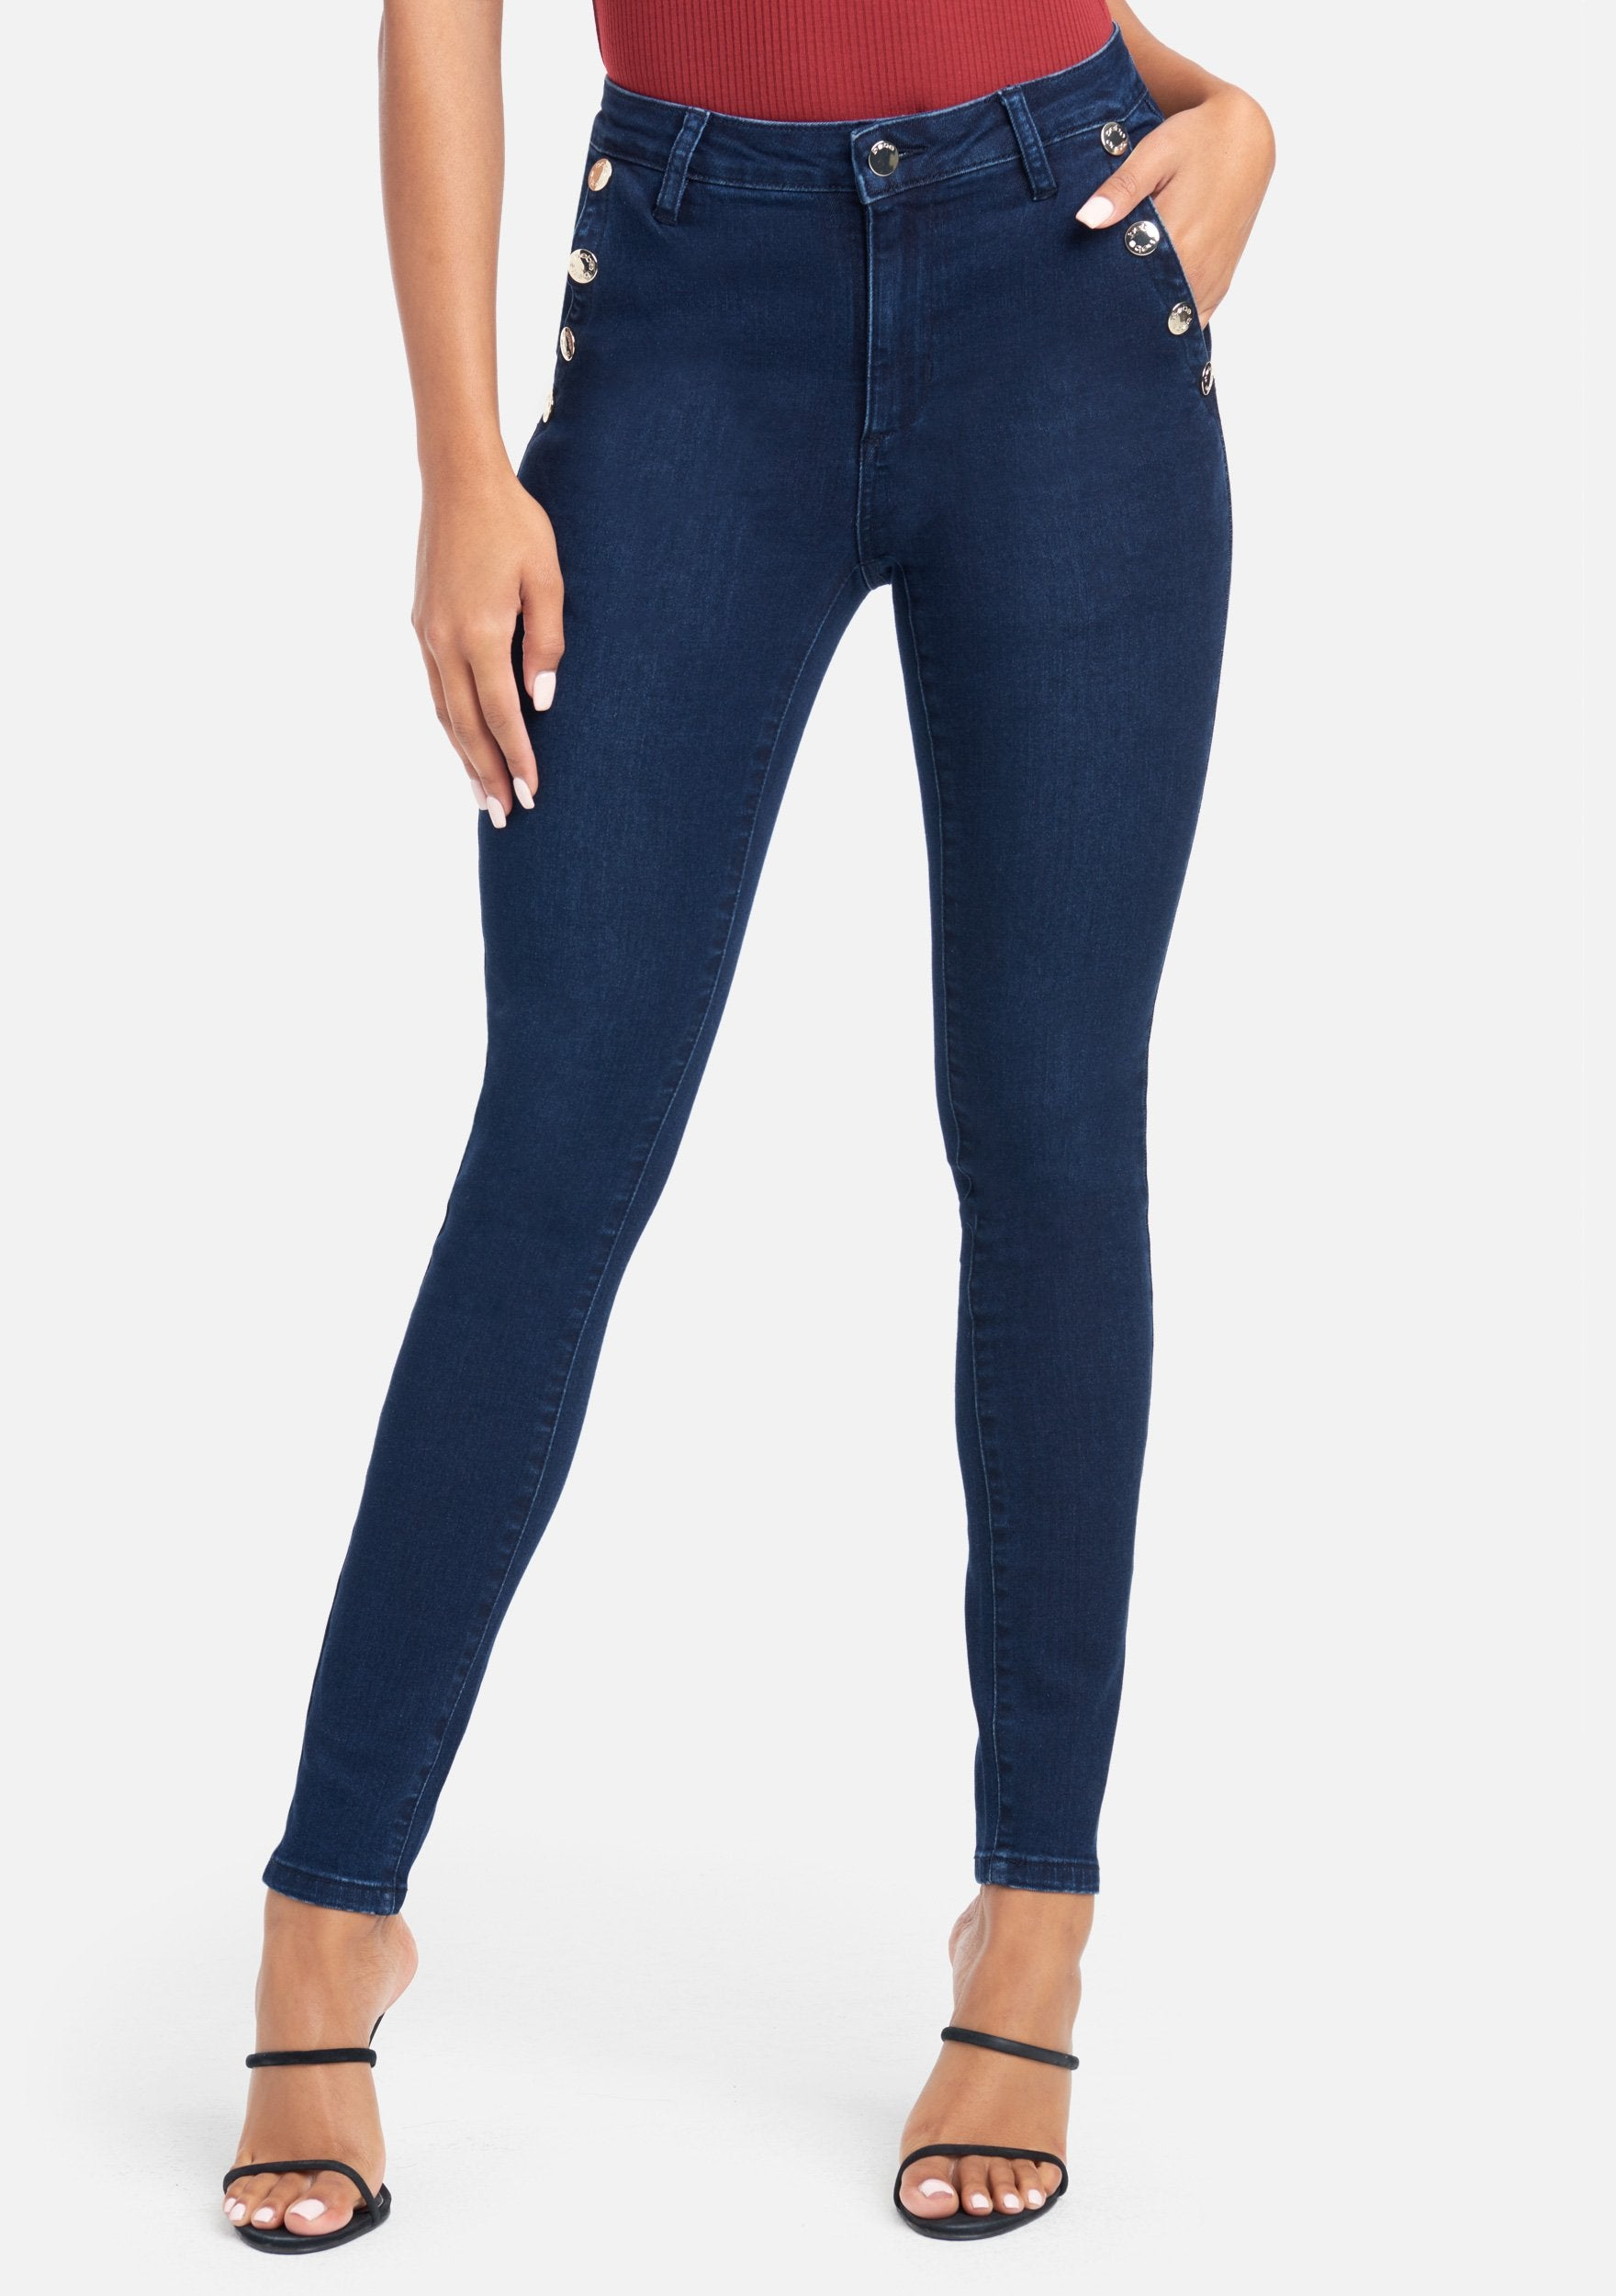 Bebe Women's Button Detail Skinny Jeans, Size 25 in Dk Indigo Wash Cotton/Spandex